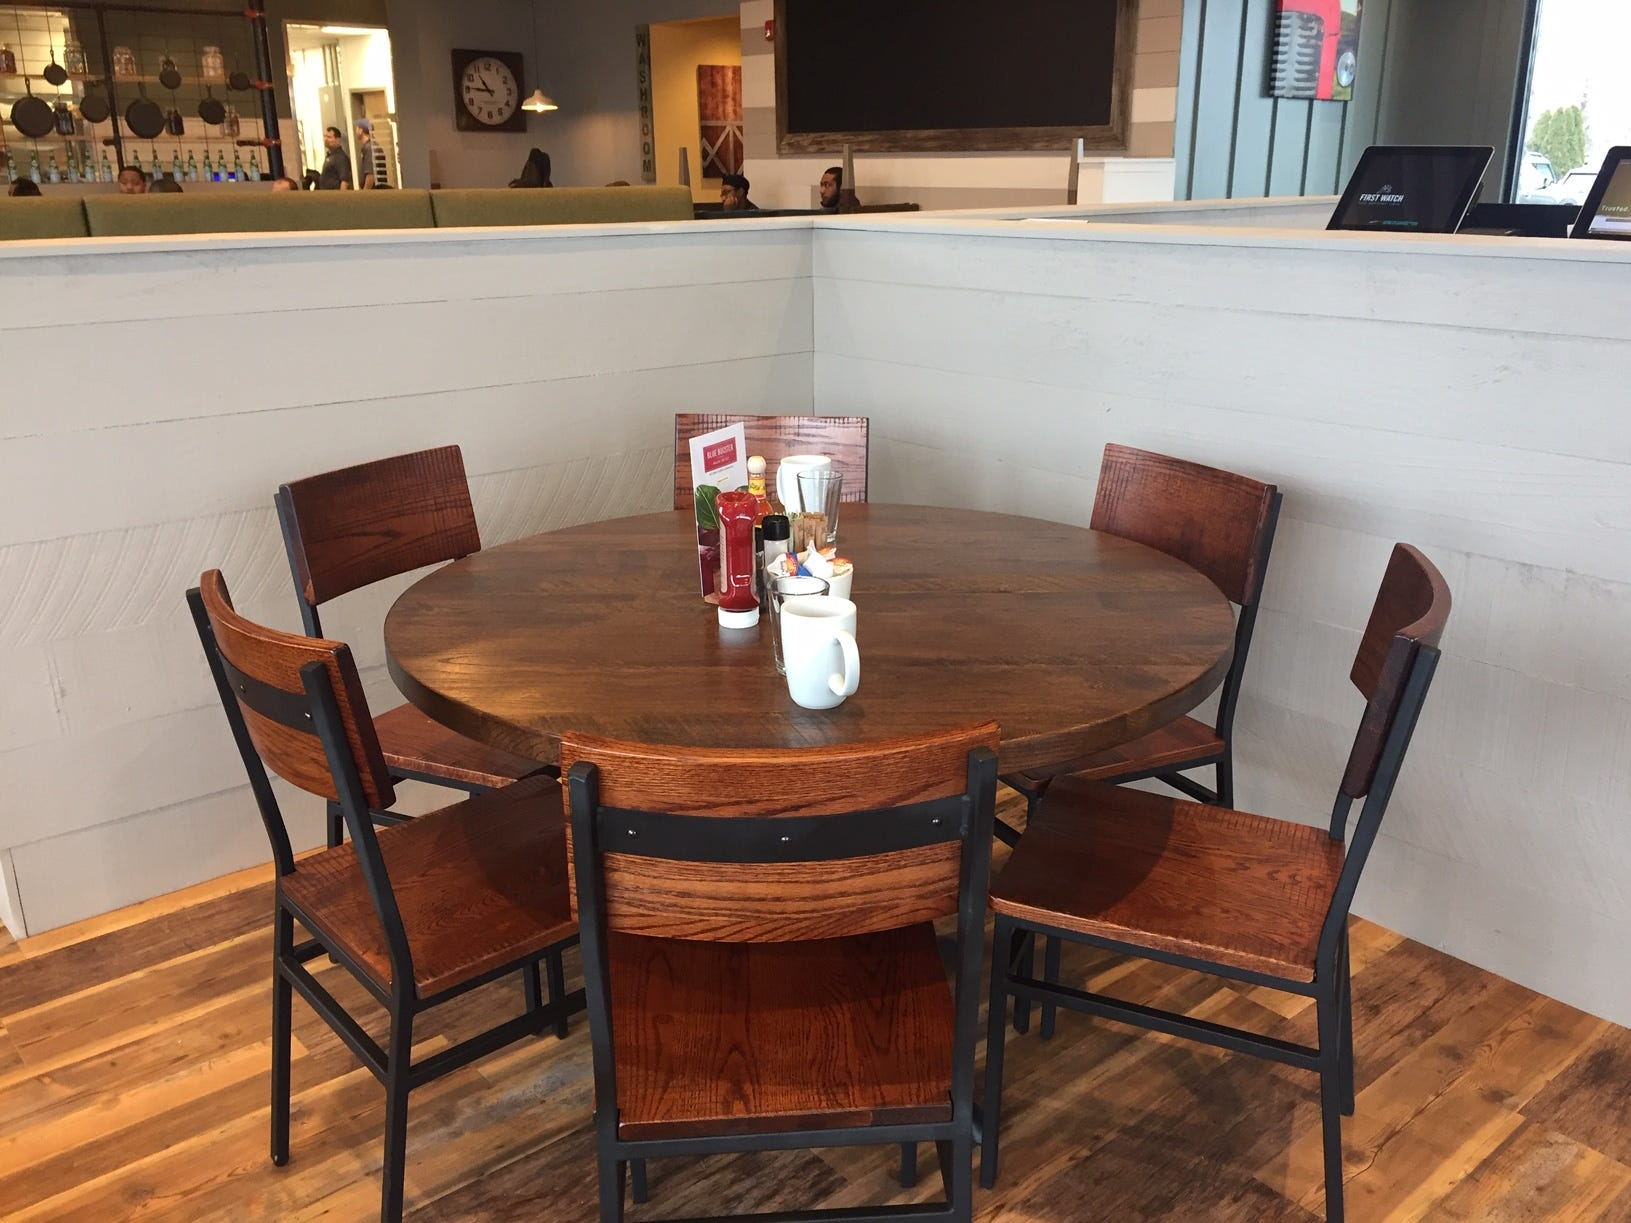 A round table provides a private spot for families or groups meeting up for brunch at First Watch in Cherry Hill.